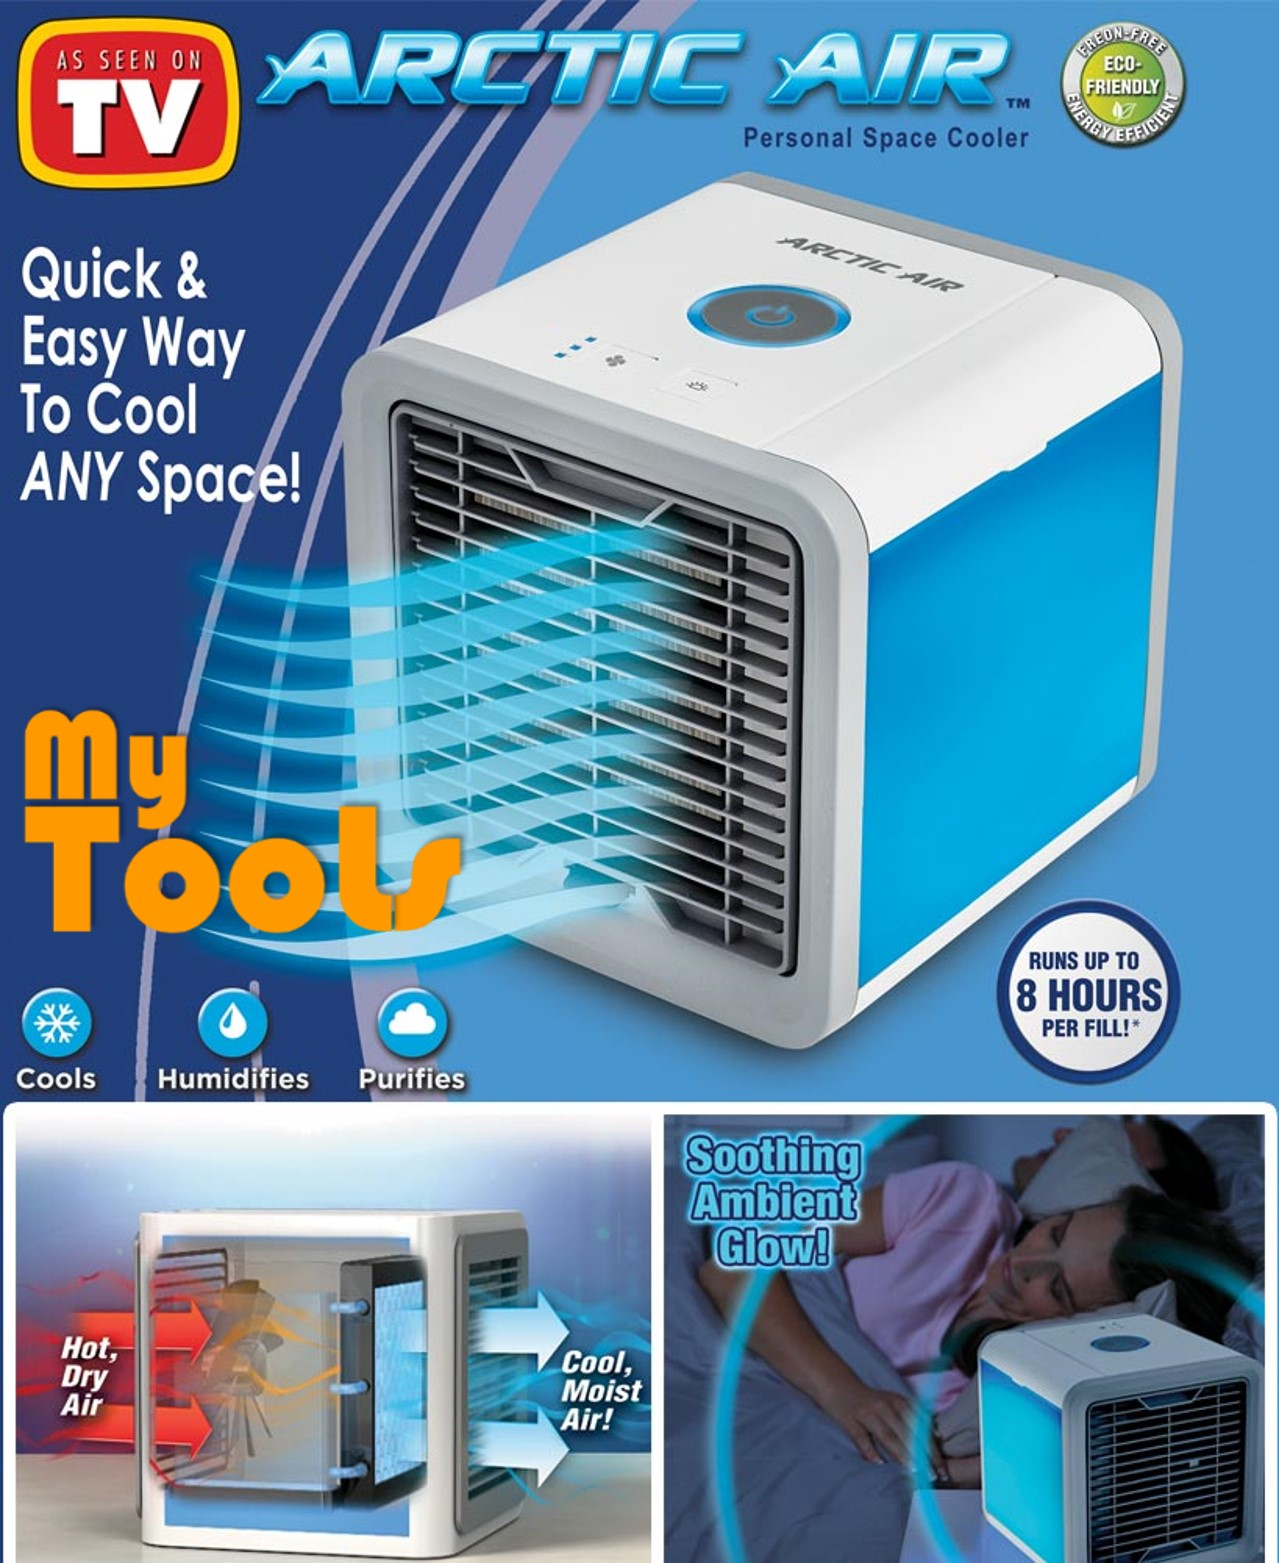 Arctic Air Cooler Conditioner 3-IN-1 Cooler Humidifier Purifier